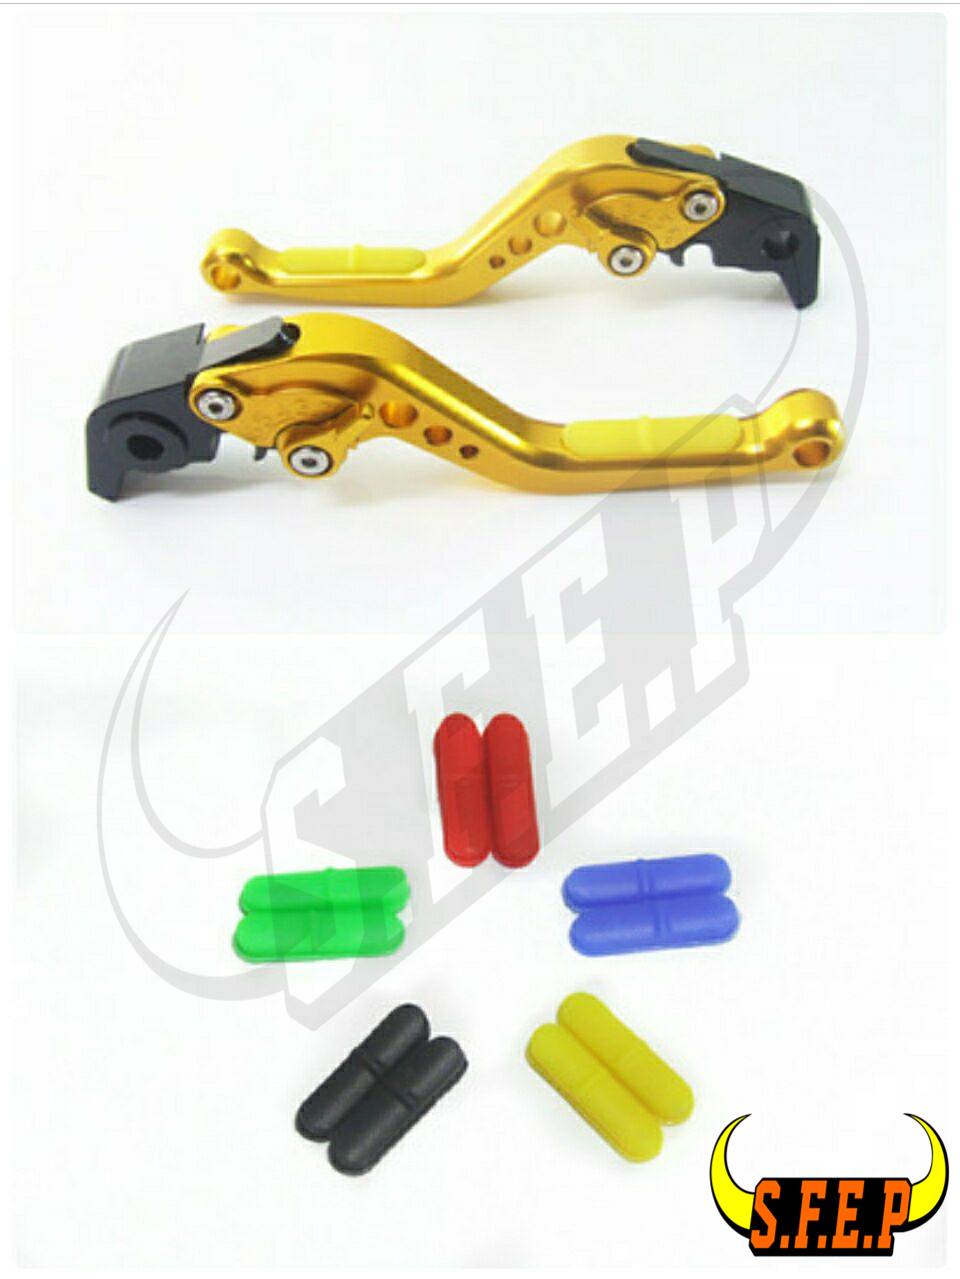 CNC Adjustable Motorcycle Brake and Clutch Levers with Anti-Slip For Yamaha FJR 1300 2003 for yamaha fjr 1300 fjr1300 2001 2001 clutch brake levers cnc 10 colors adjsustable